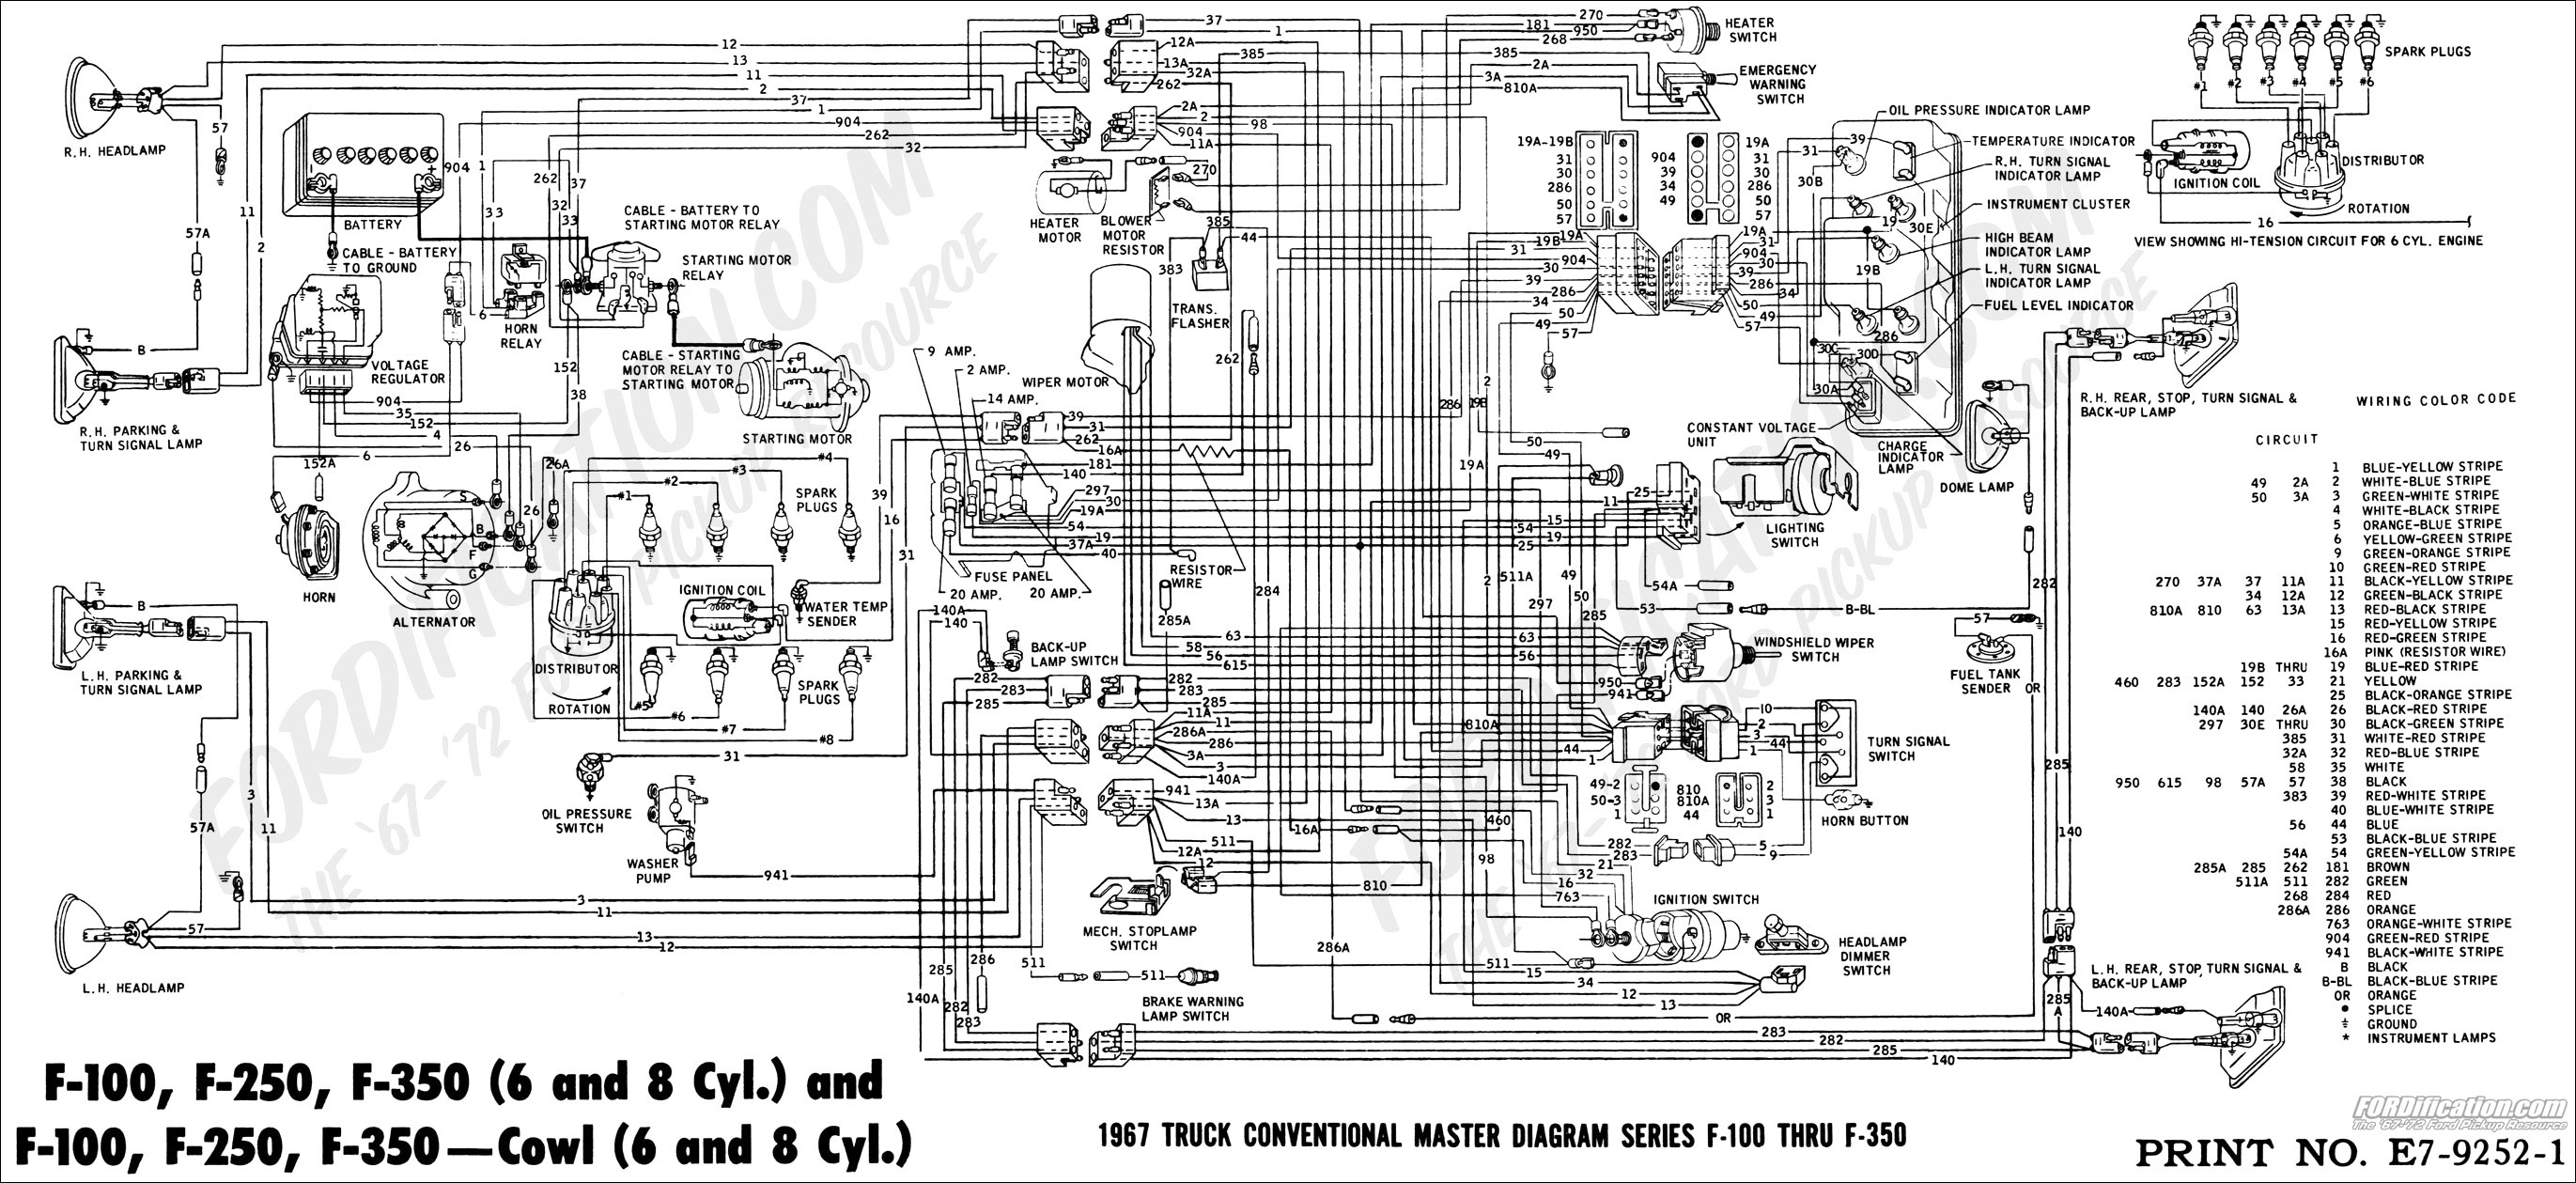 ford f150 wiring diagram wiring data rh unroutine co 2011 f150 wiring schematic 2006 f150 wiring schematic